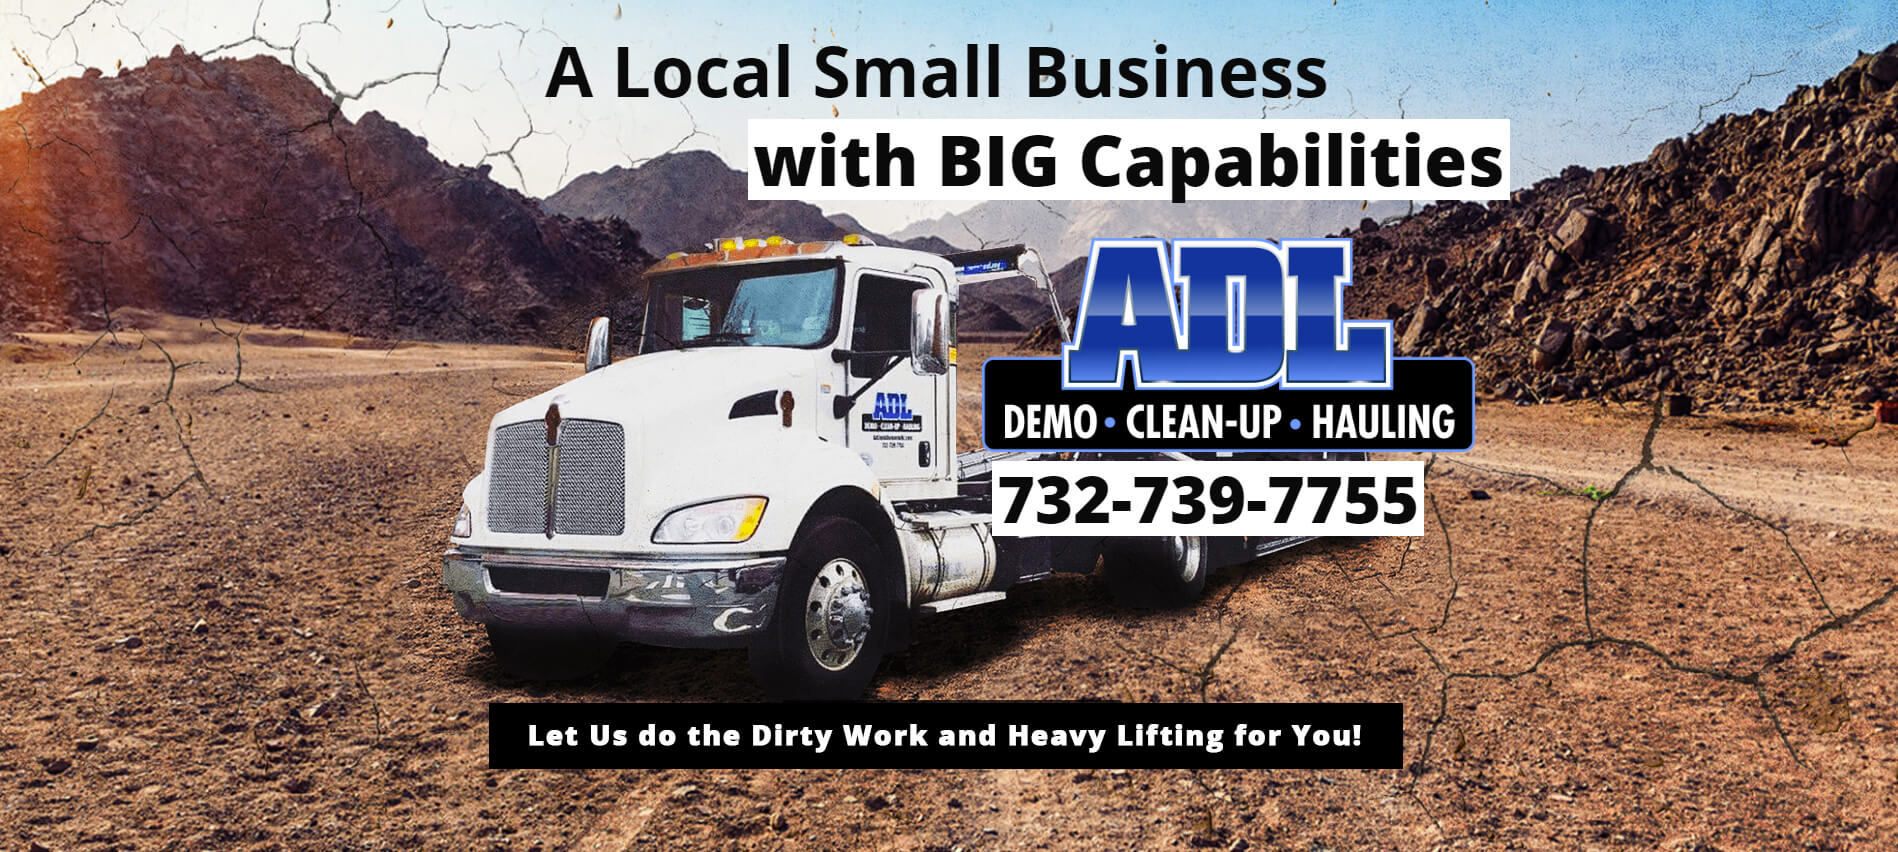 A local business with big capabilities, ADL demo clean-up and hauling. 732-739-7755 - Let us do the dirty work and heavy lifting for you